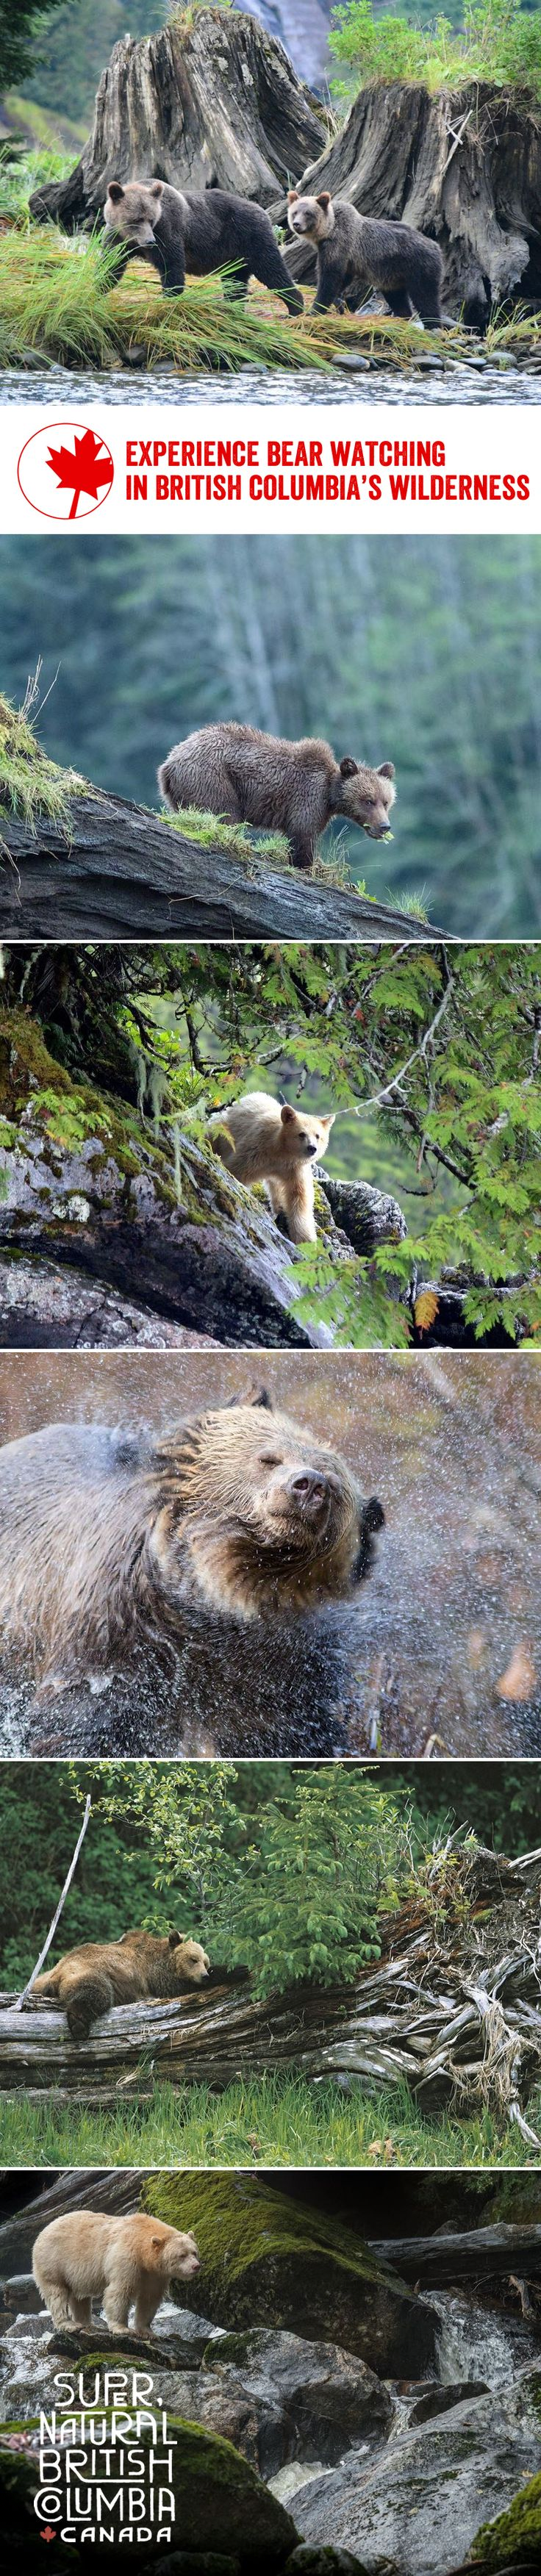 Seeing a majestic bear roaming its natural habitat is a moment you won't forget – and where better to see them than in British Columbia's stunning natural wilderness?